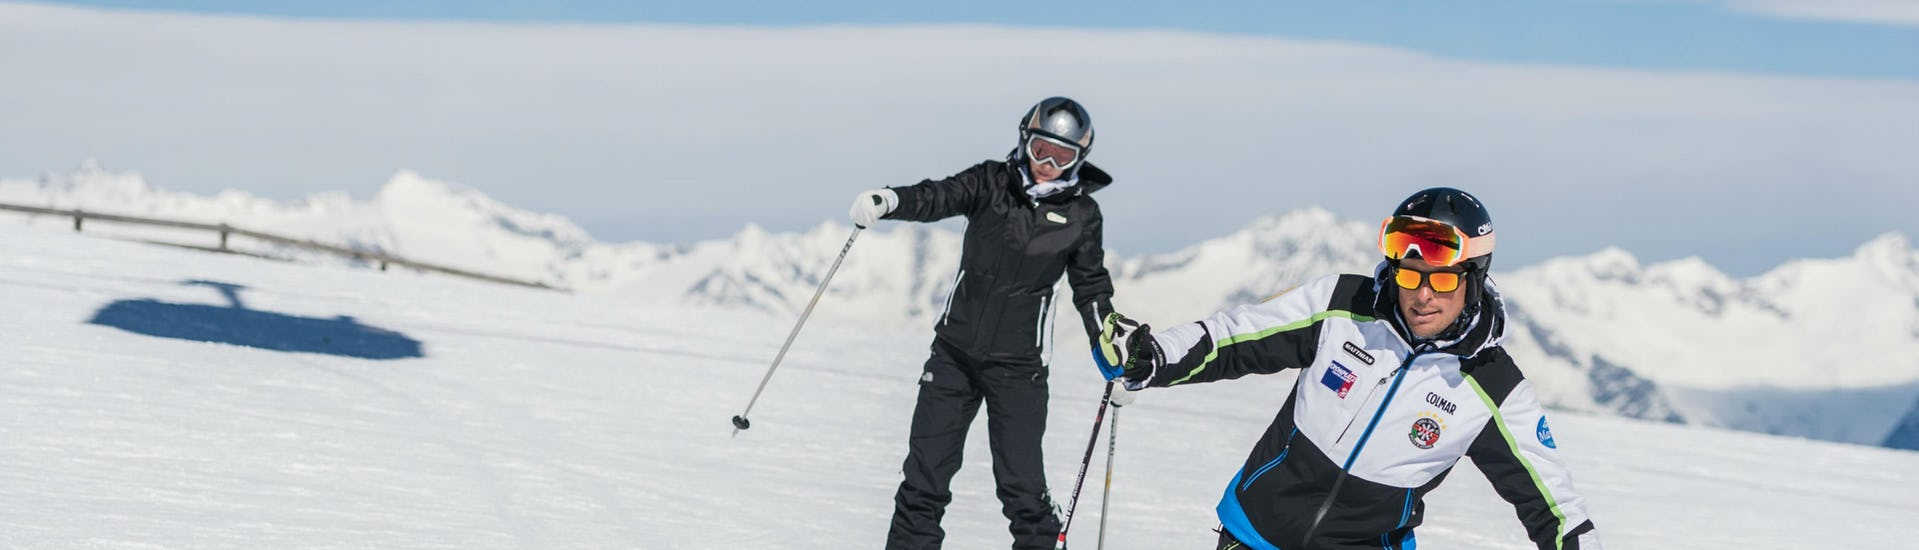 Ski Lessons for Adults - Half Day